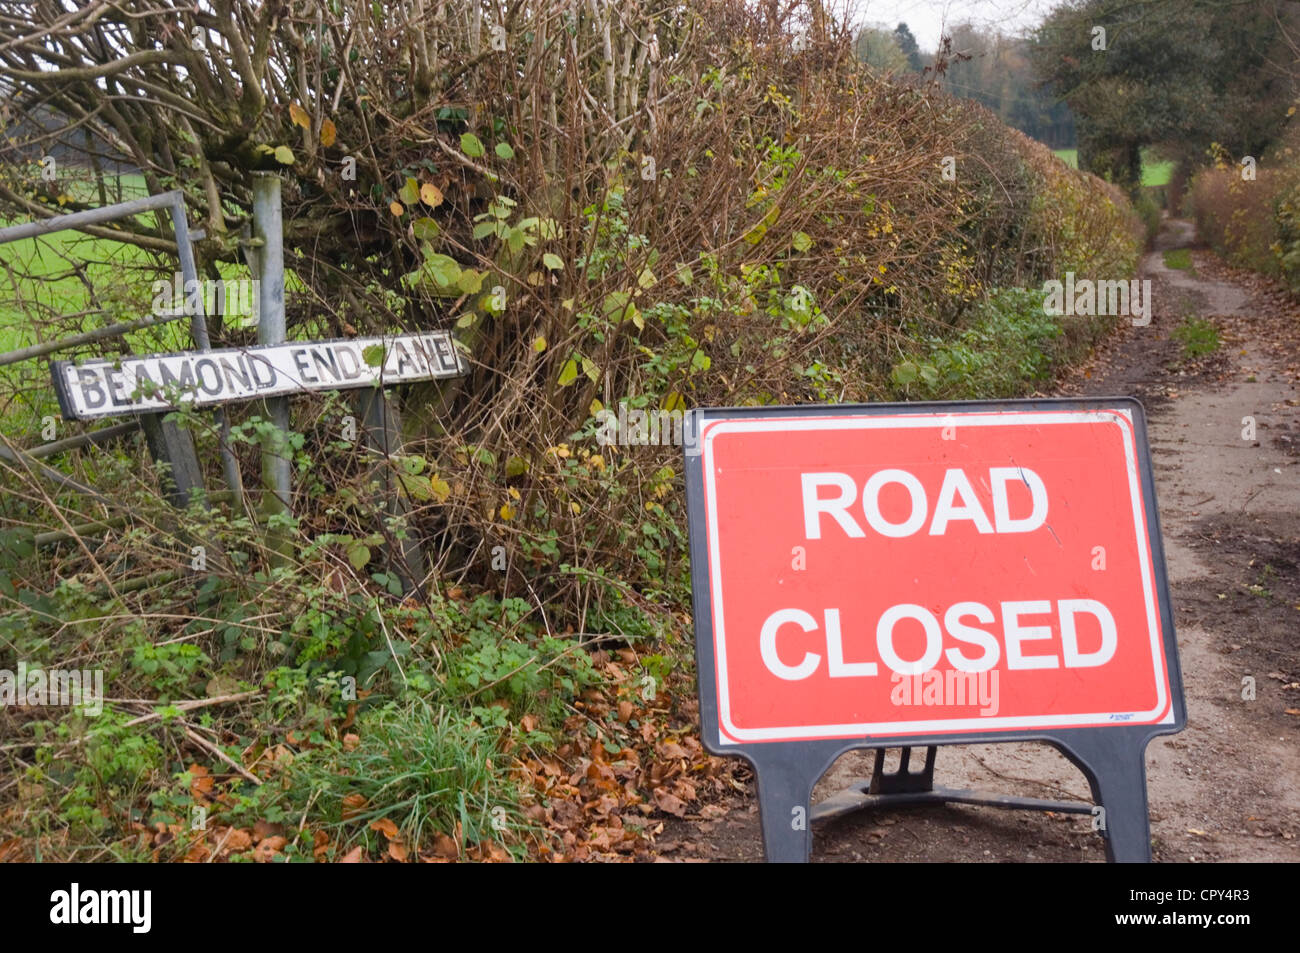 Closure of a country lane - Road Closed sign - autumn leaves and colours in the hedgerows - lane curving into distance - Stock Image